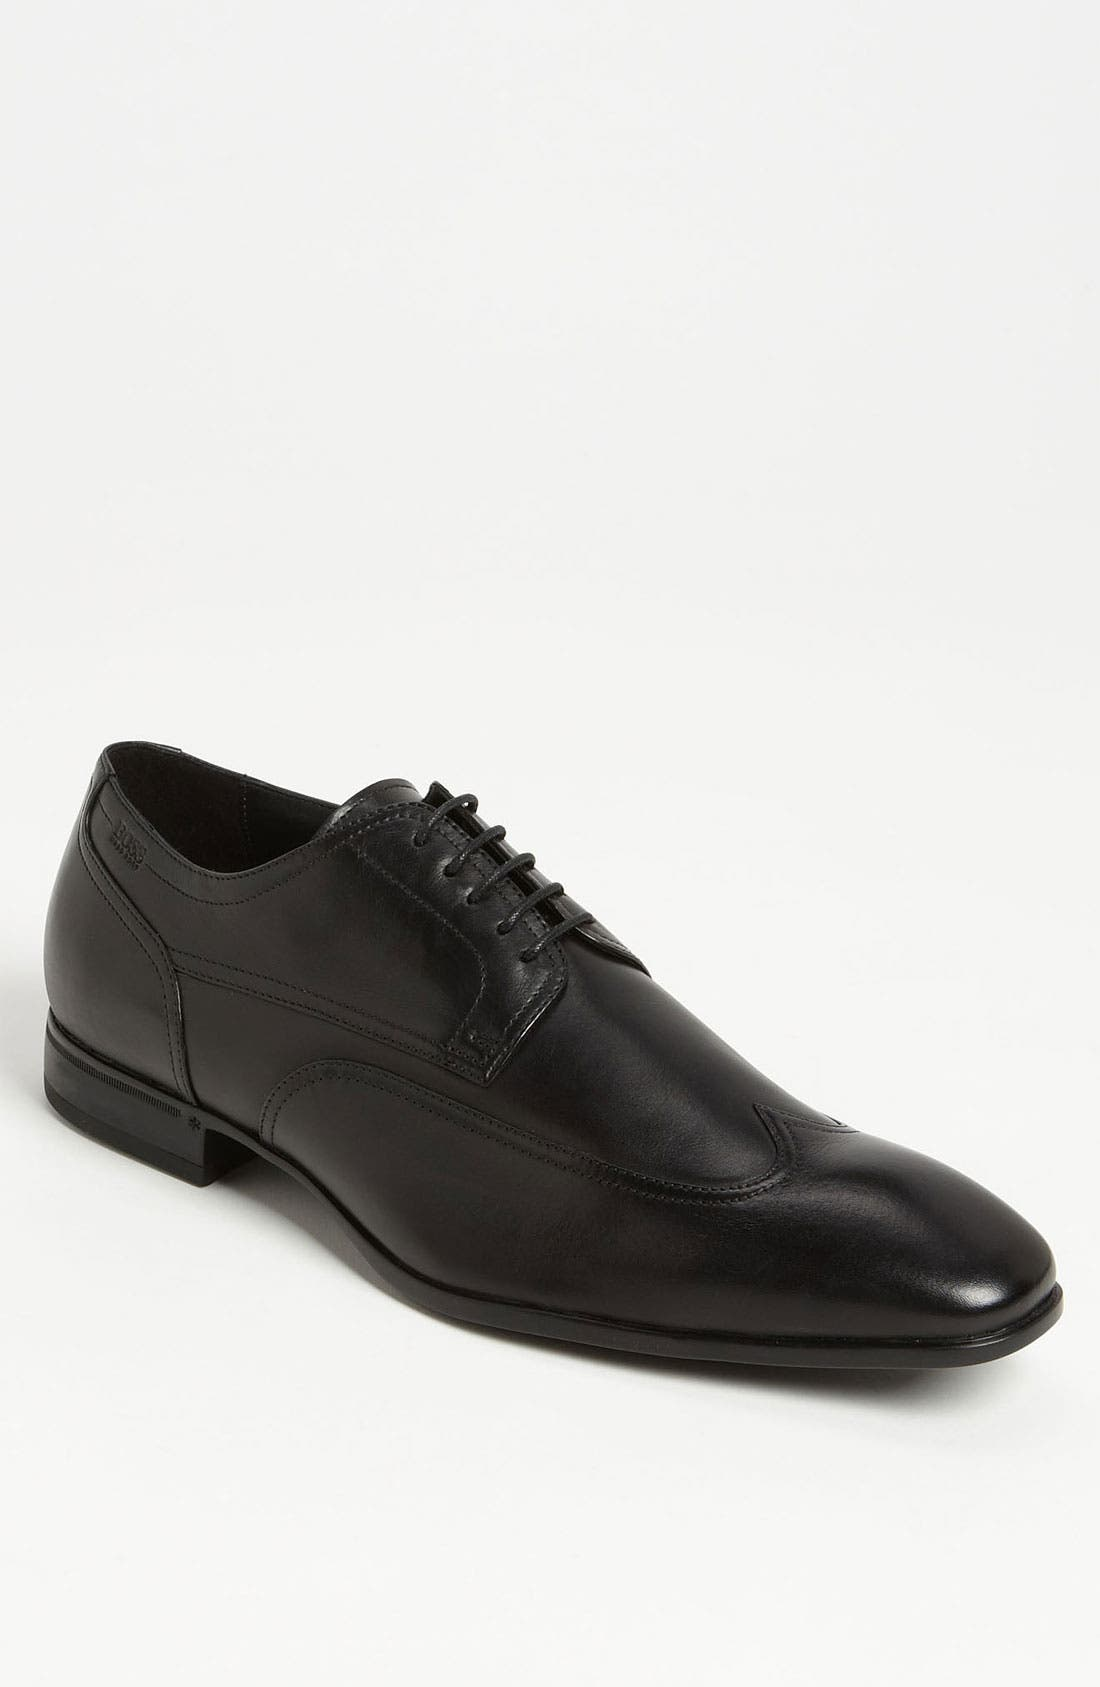 Main Image - BOSS HUGO BOSS 'Vernus' Wingtip Oxford